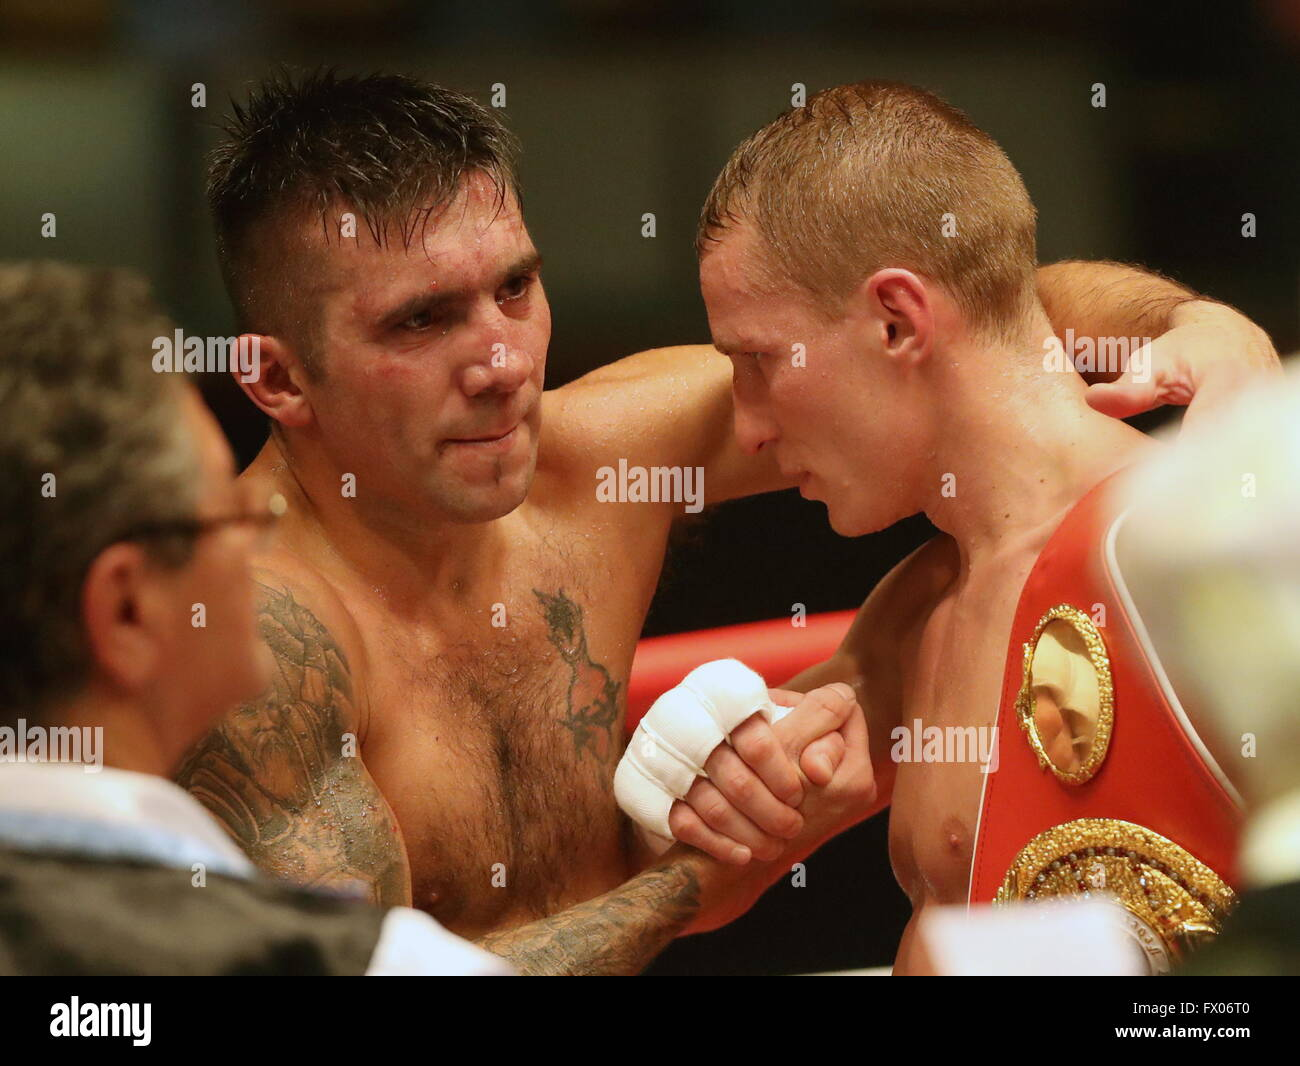 Edward Troyanovsky: Russian Eagle of professional boxing